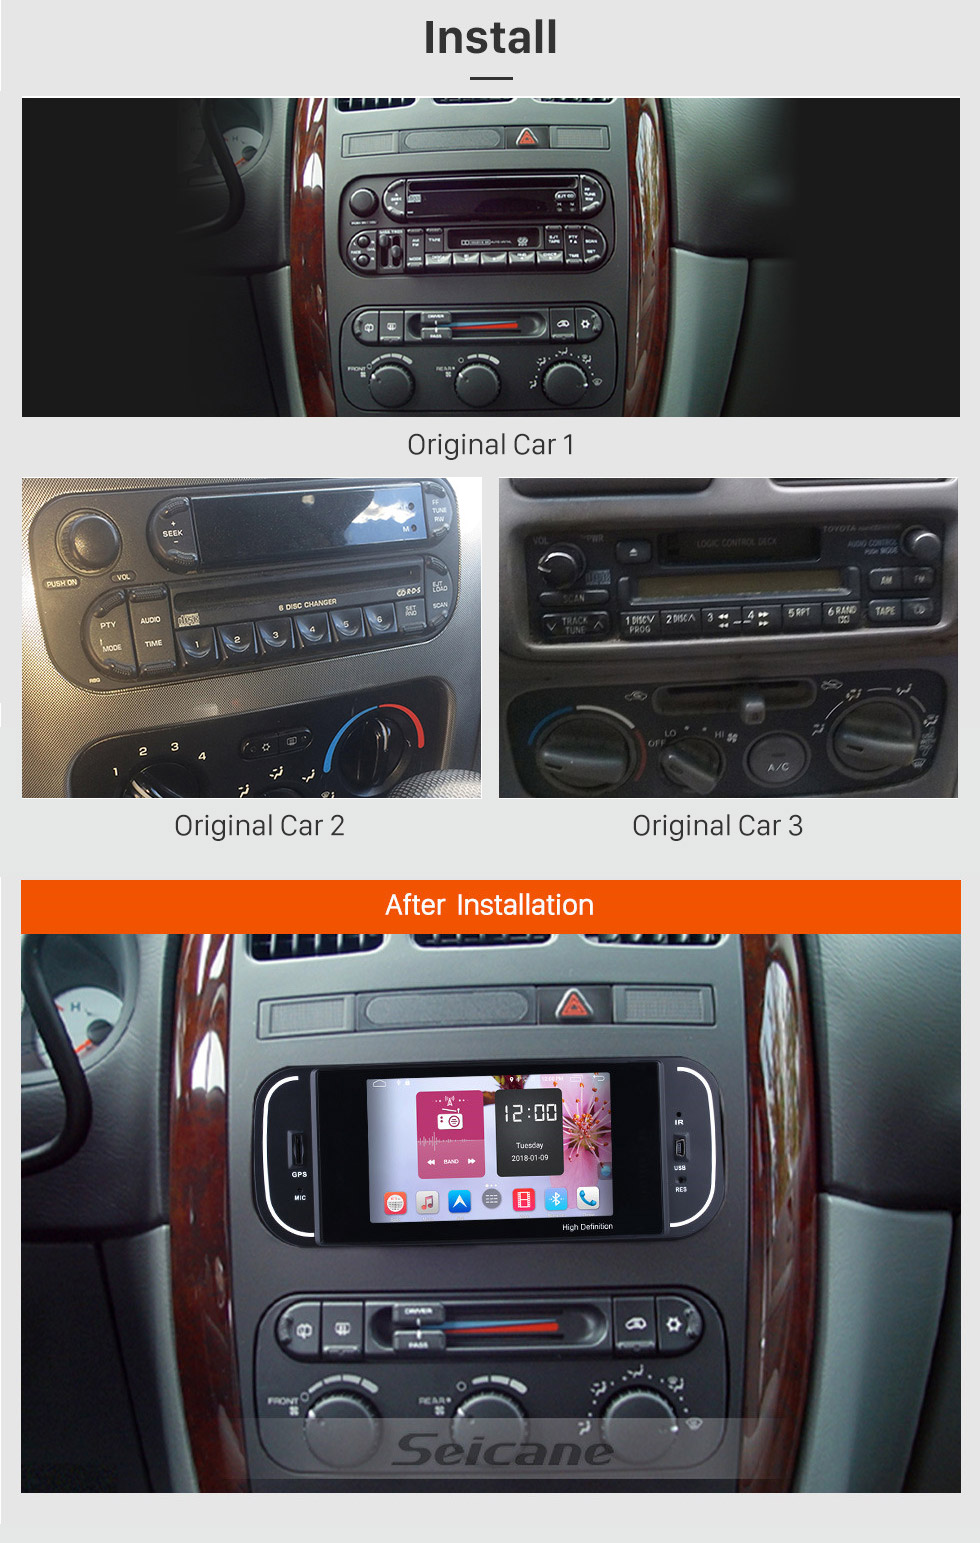 Seicane Android 6.0 HD Touchscreen For 2001-2007 Chrysler 300M PT Cruiser Sebring Concorde Grand Voyager Town & Country Radio GPS Navigation System Bluetooth Support Rearview Camera